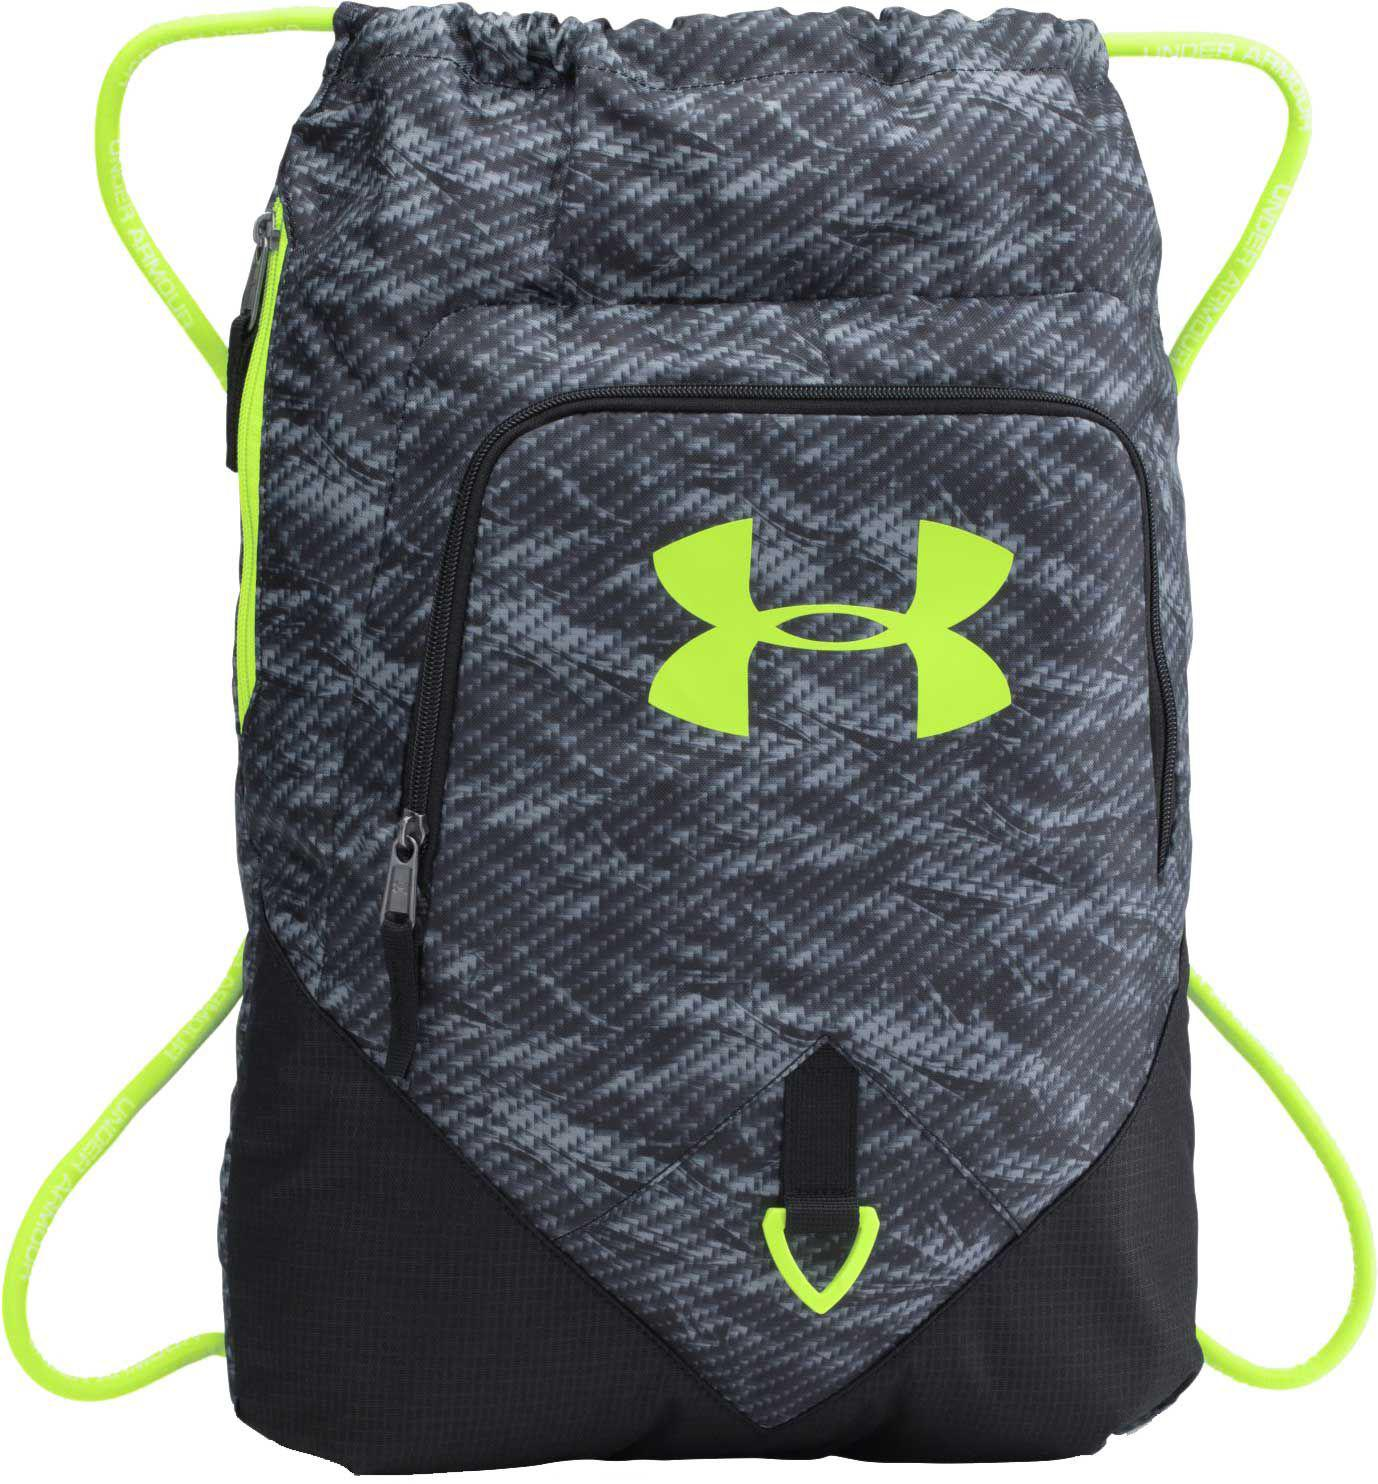 09e57a61b65a Under Armour Multicolor Undeniable Sackpack for men